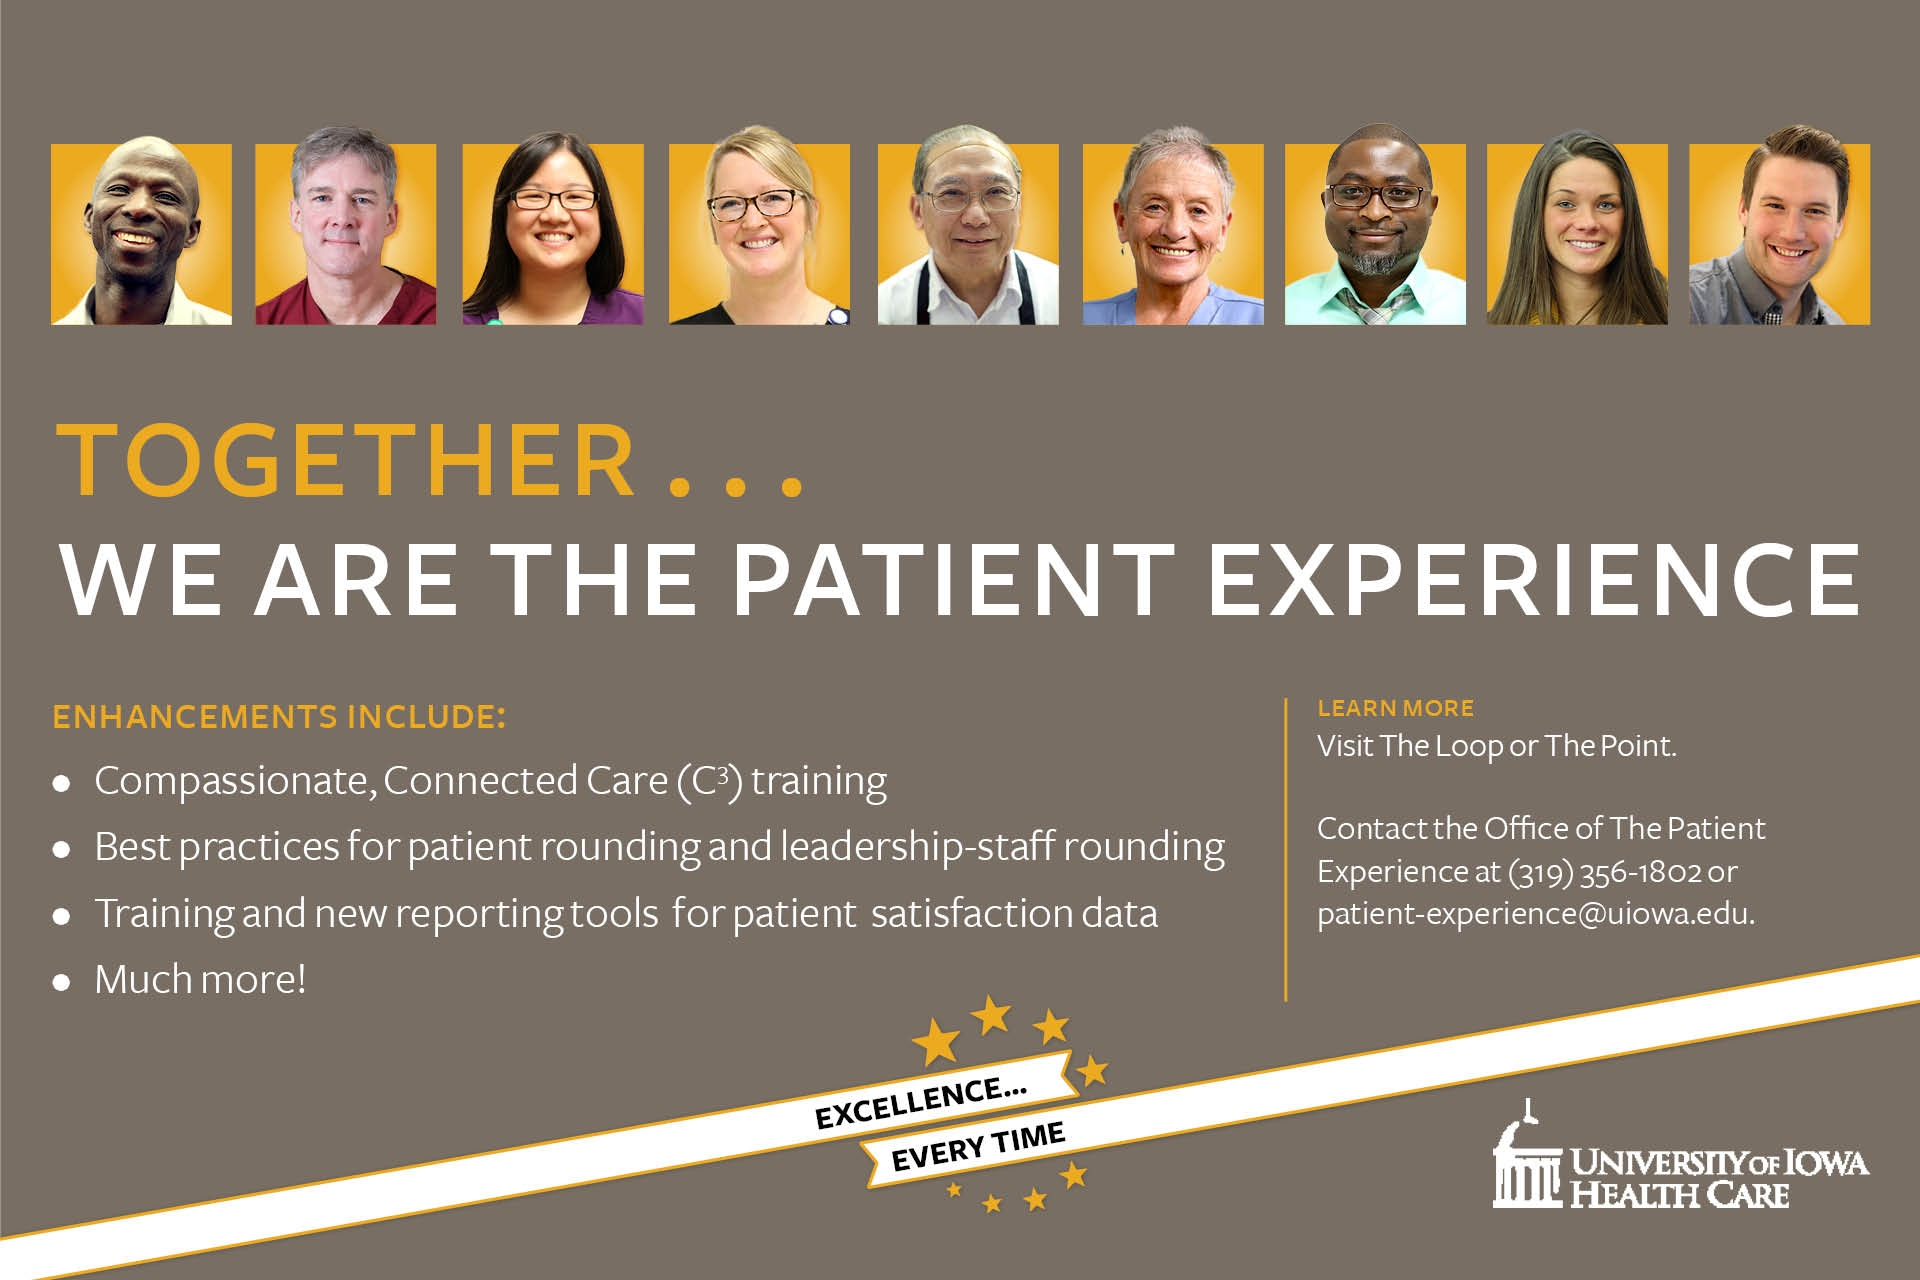 Together... We are the Patient Experience